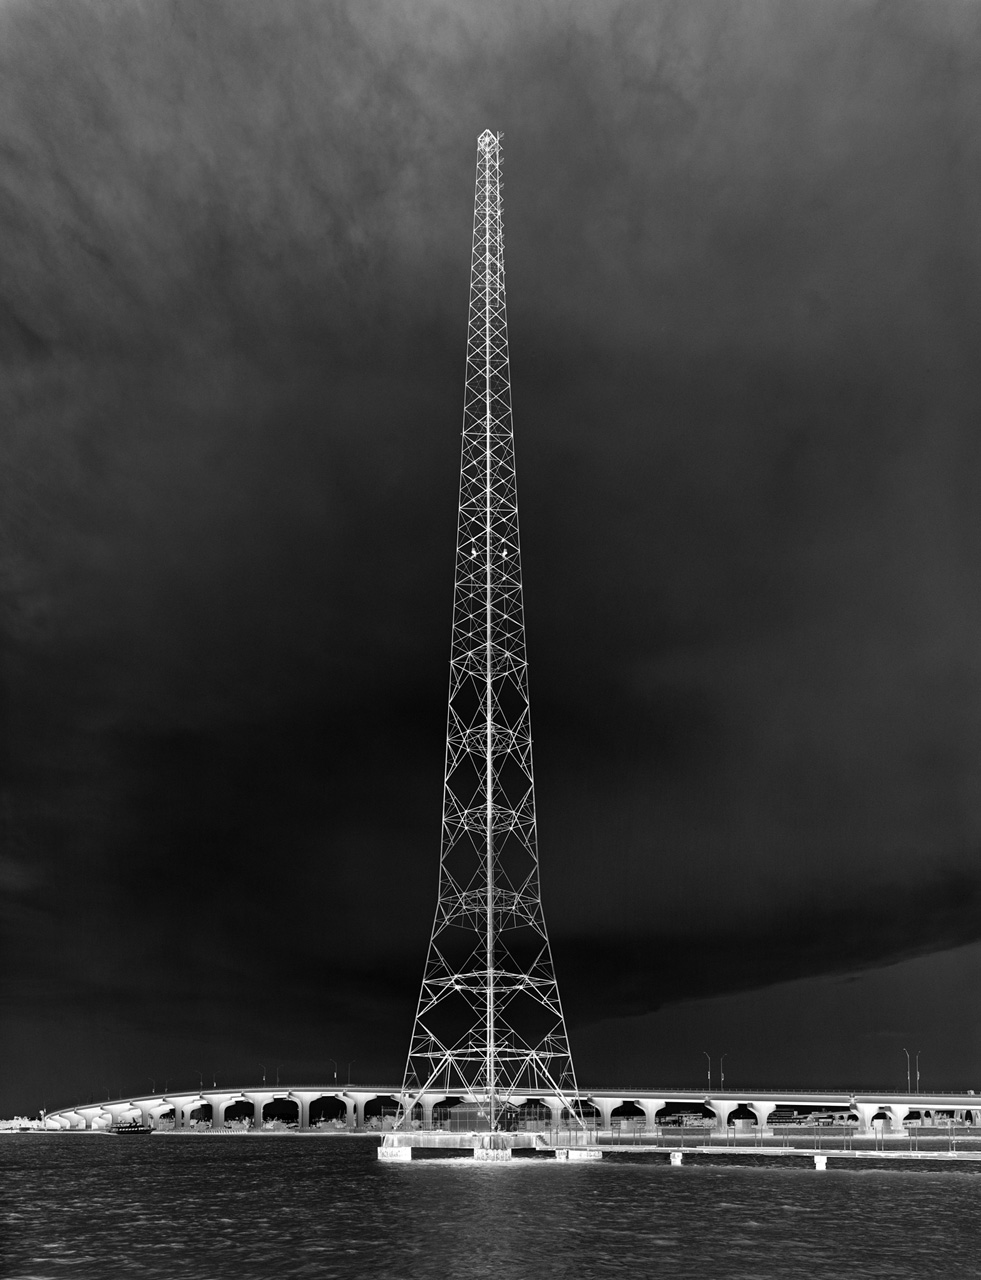 07-Miami-Bridge-Tower.jpg